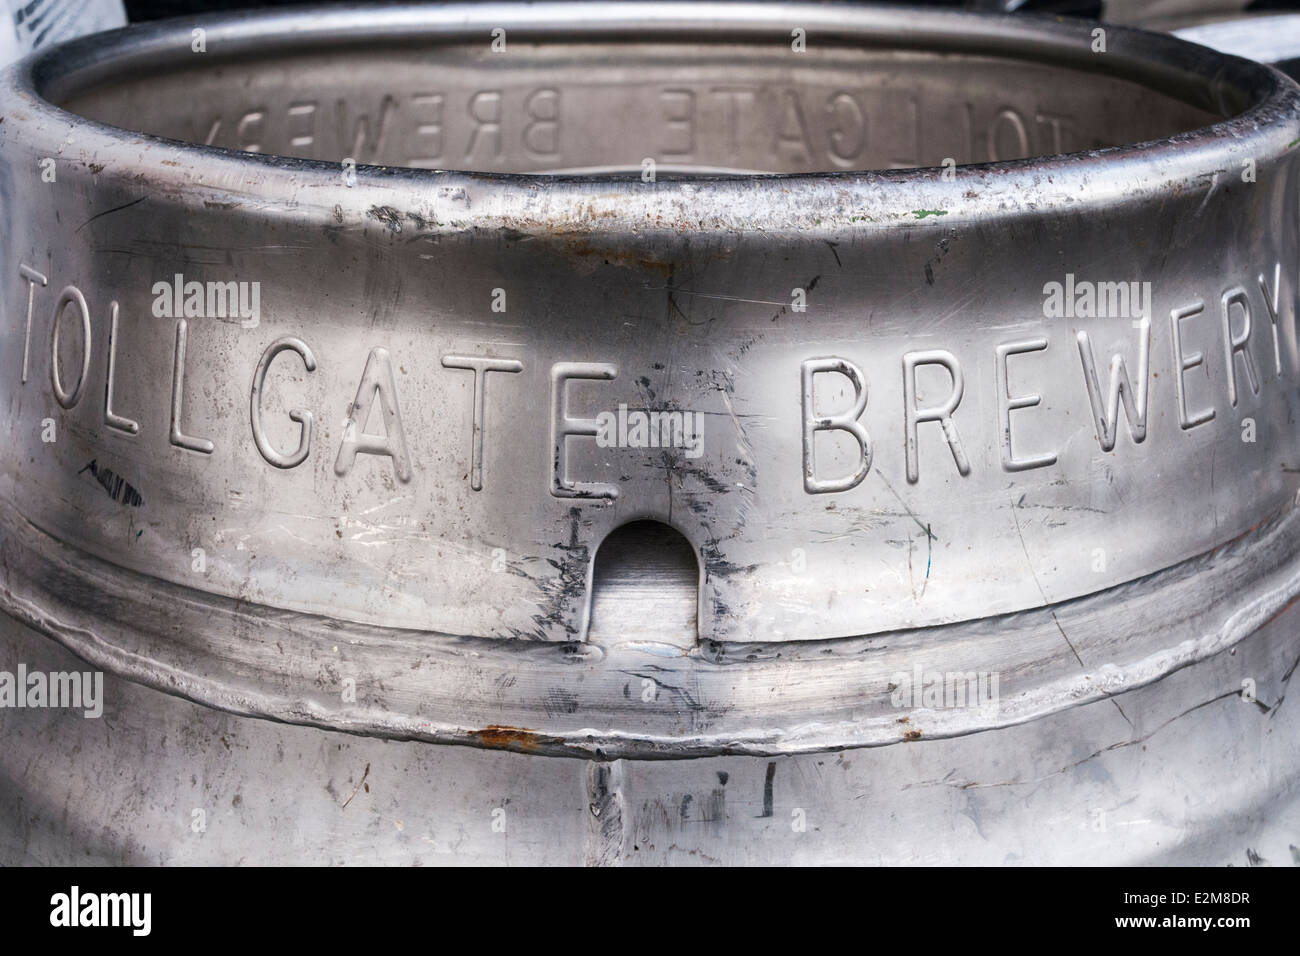 Closeup of the wording on a Tollgate Brewery beer keg - Stock Image